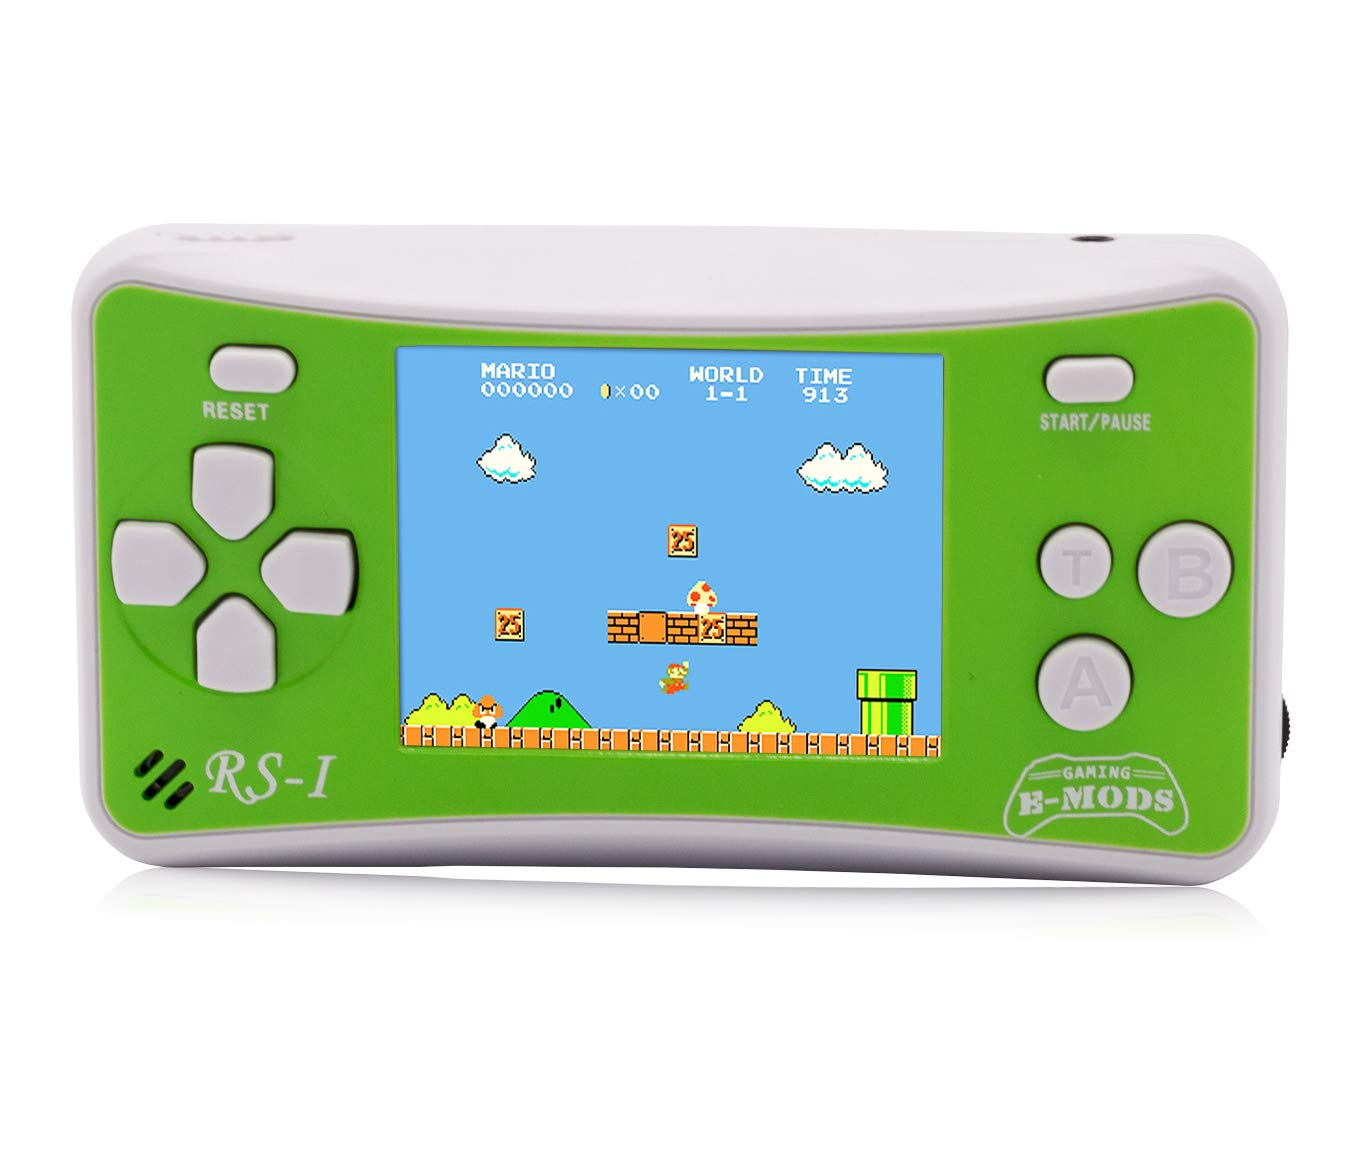 Hisonders 2.5'' Color Display Retro Portable Handheld Video Game Console Built in 162 Games (Green)